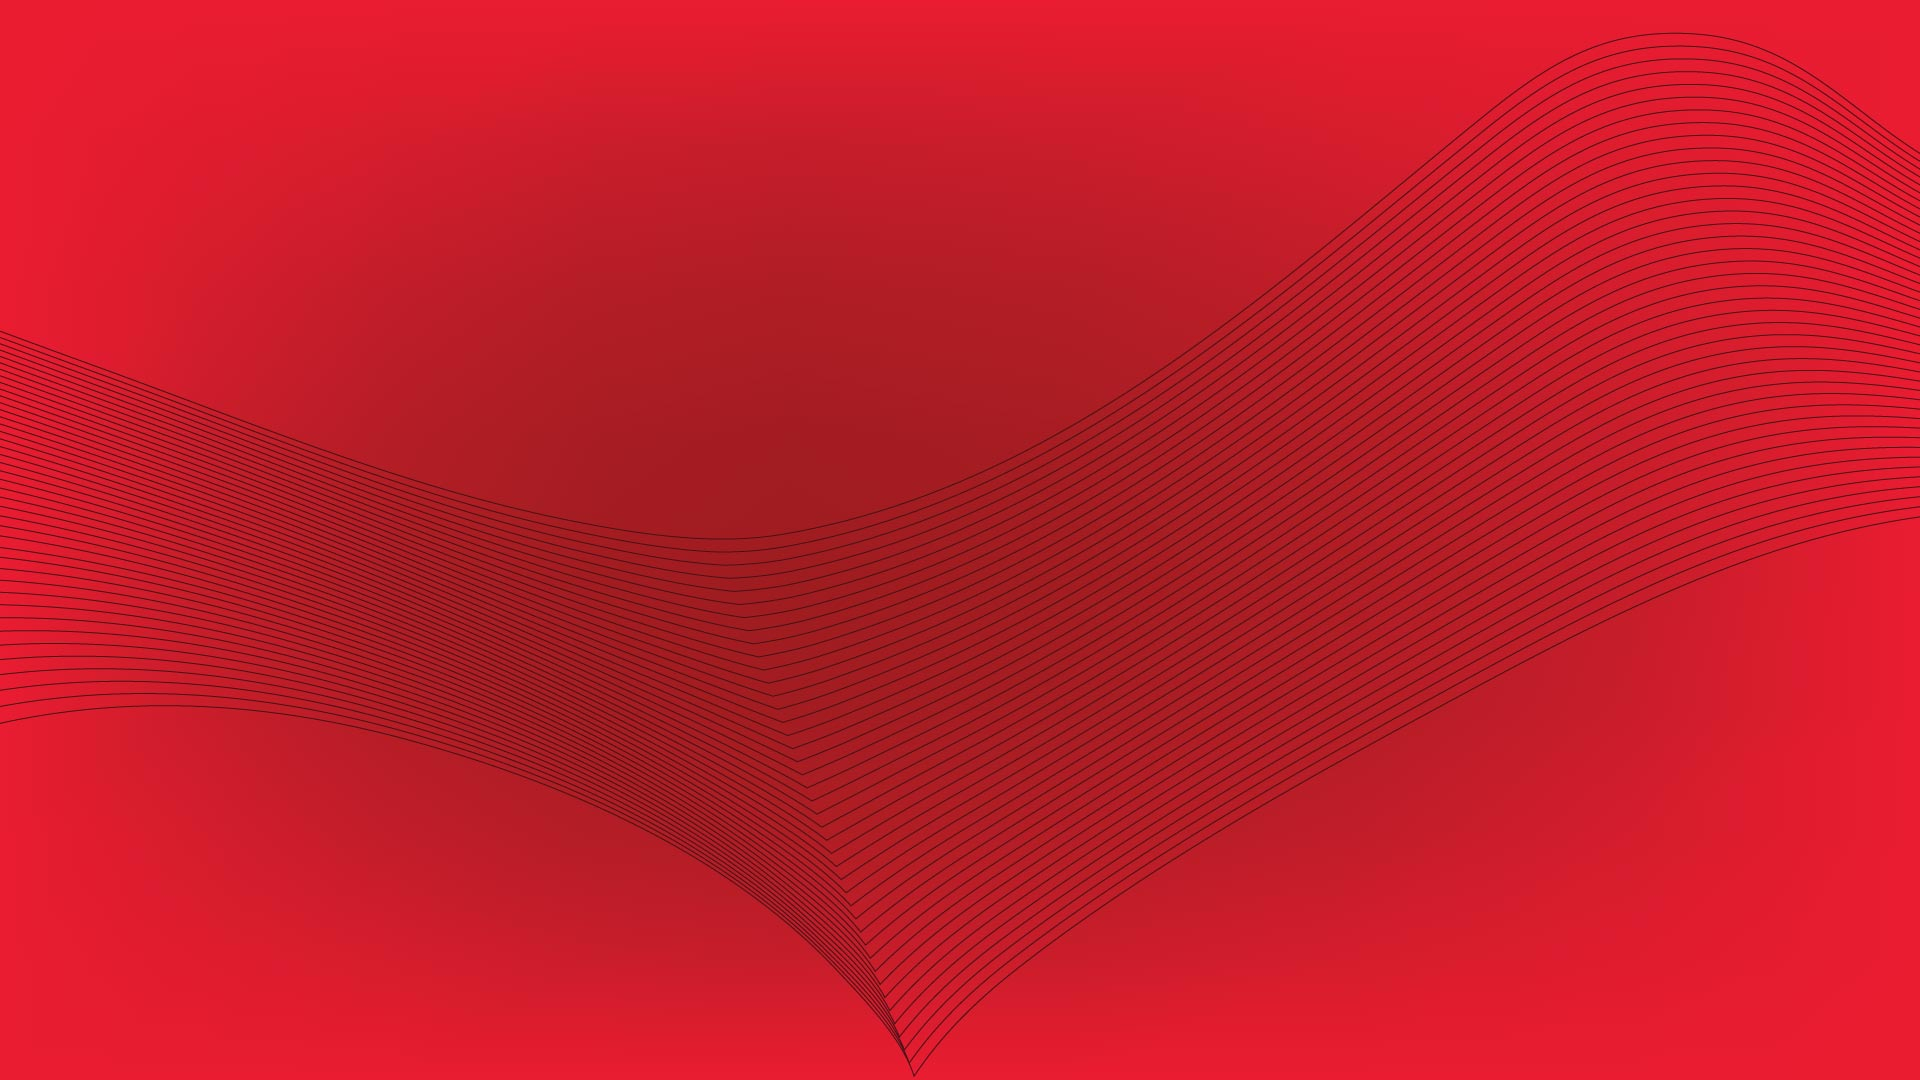 Red Abstract Background Images hd